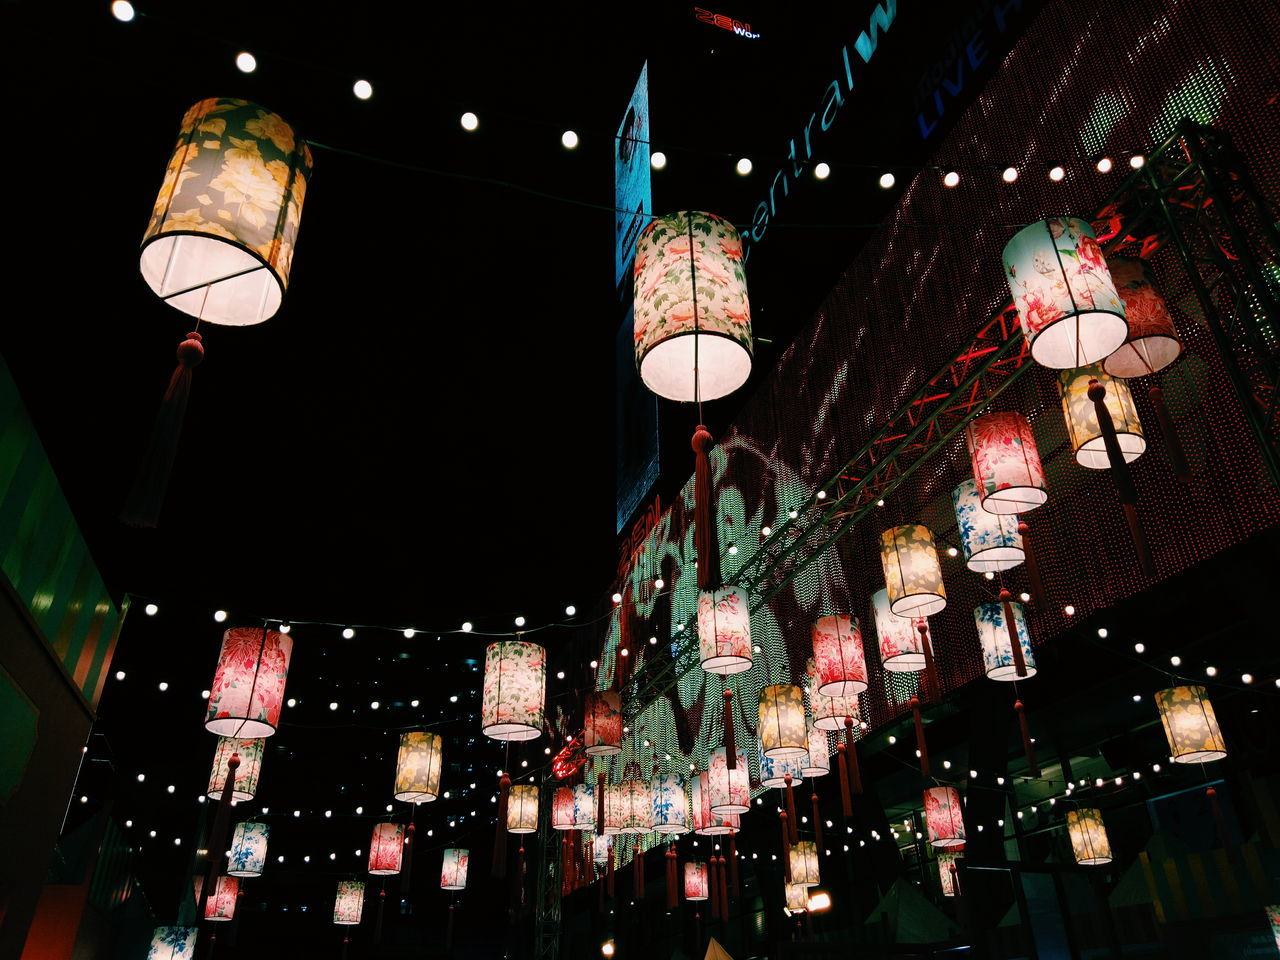 hanging, night, lighting equipment, illuminated, chinese lantern, low angle view, lantern, cultures, celebration, paper lantern, chinese lantern festival, traditional festival, no people, chinese new year, outdoors, architecture, city, sky